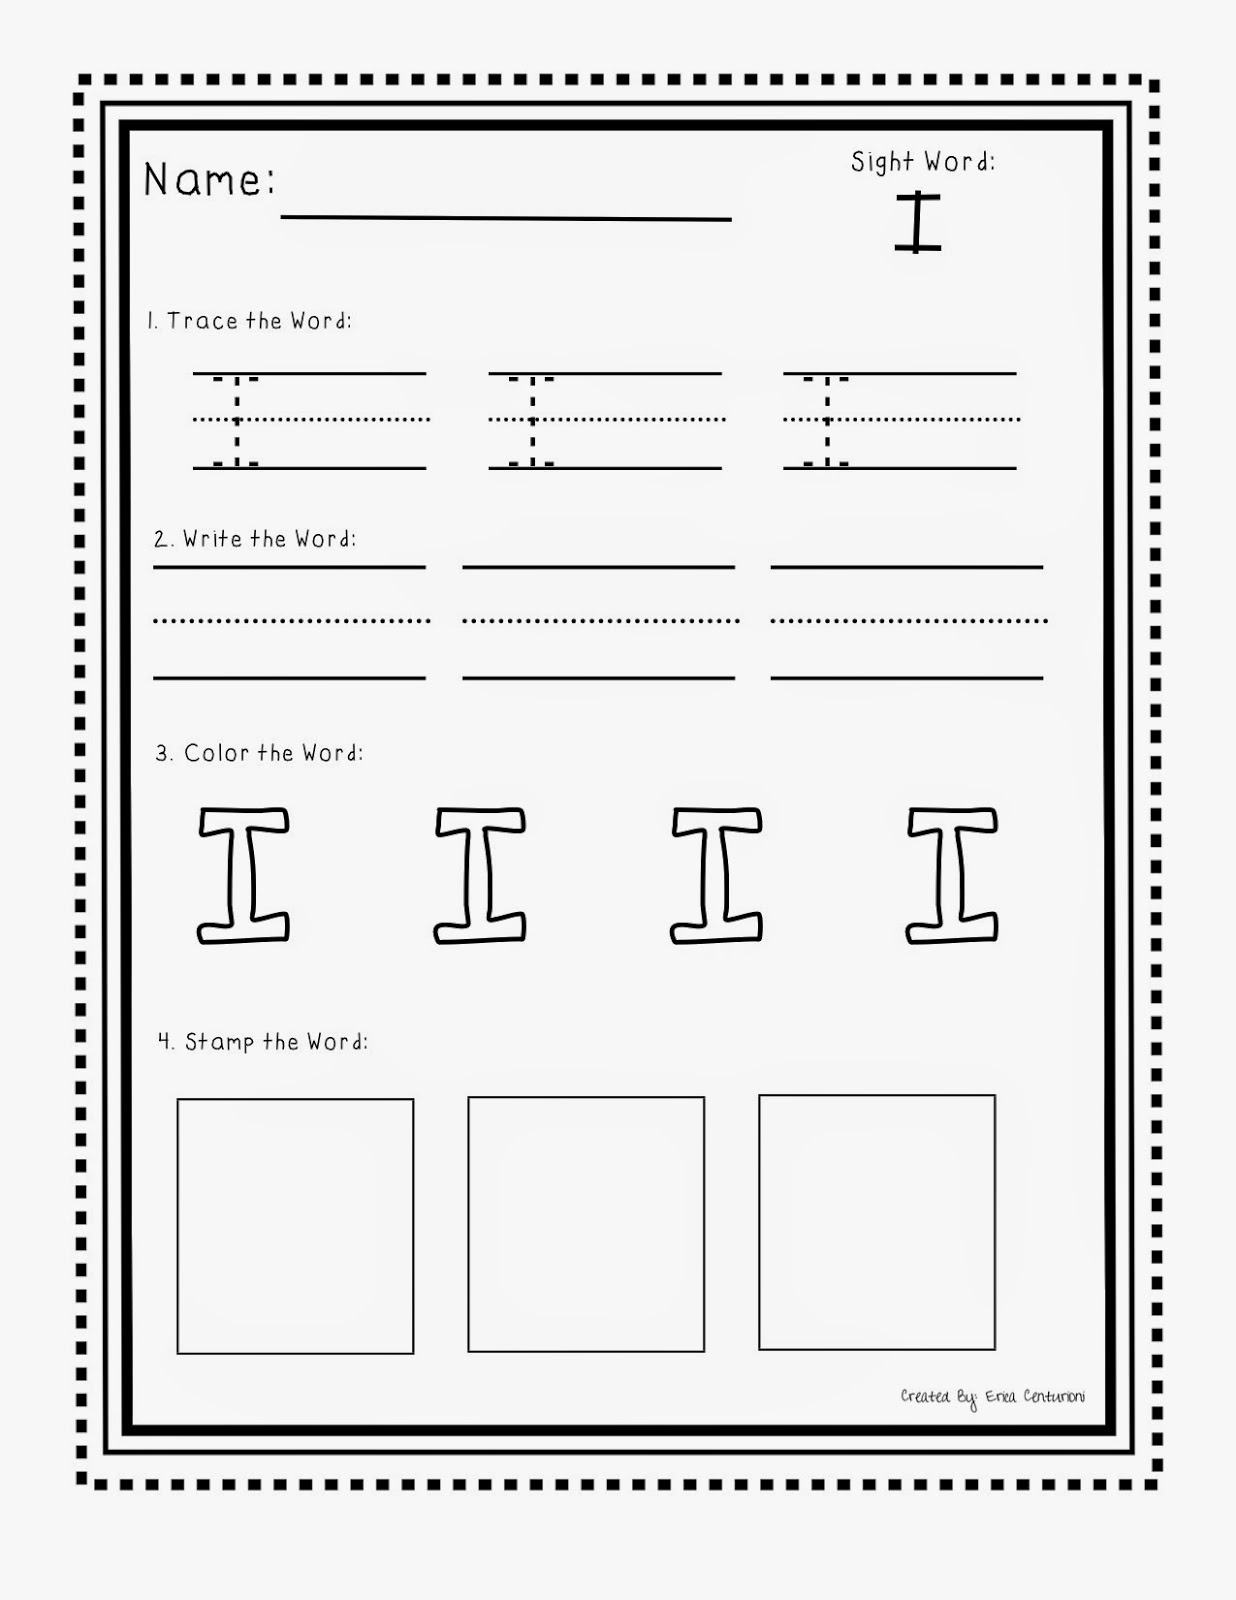 Sight Word I Worksheet Photos